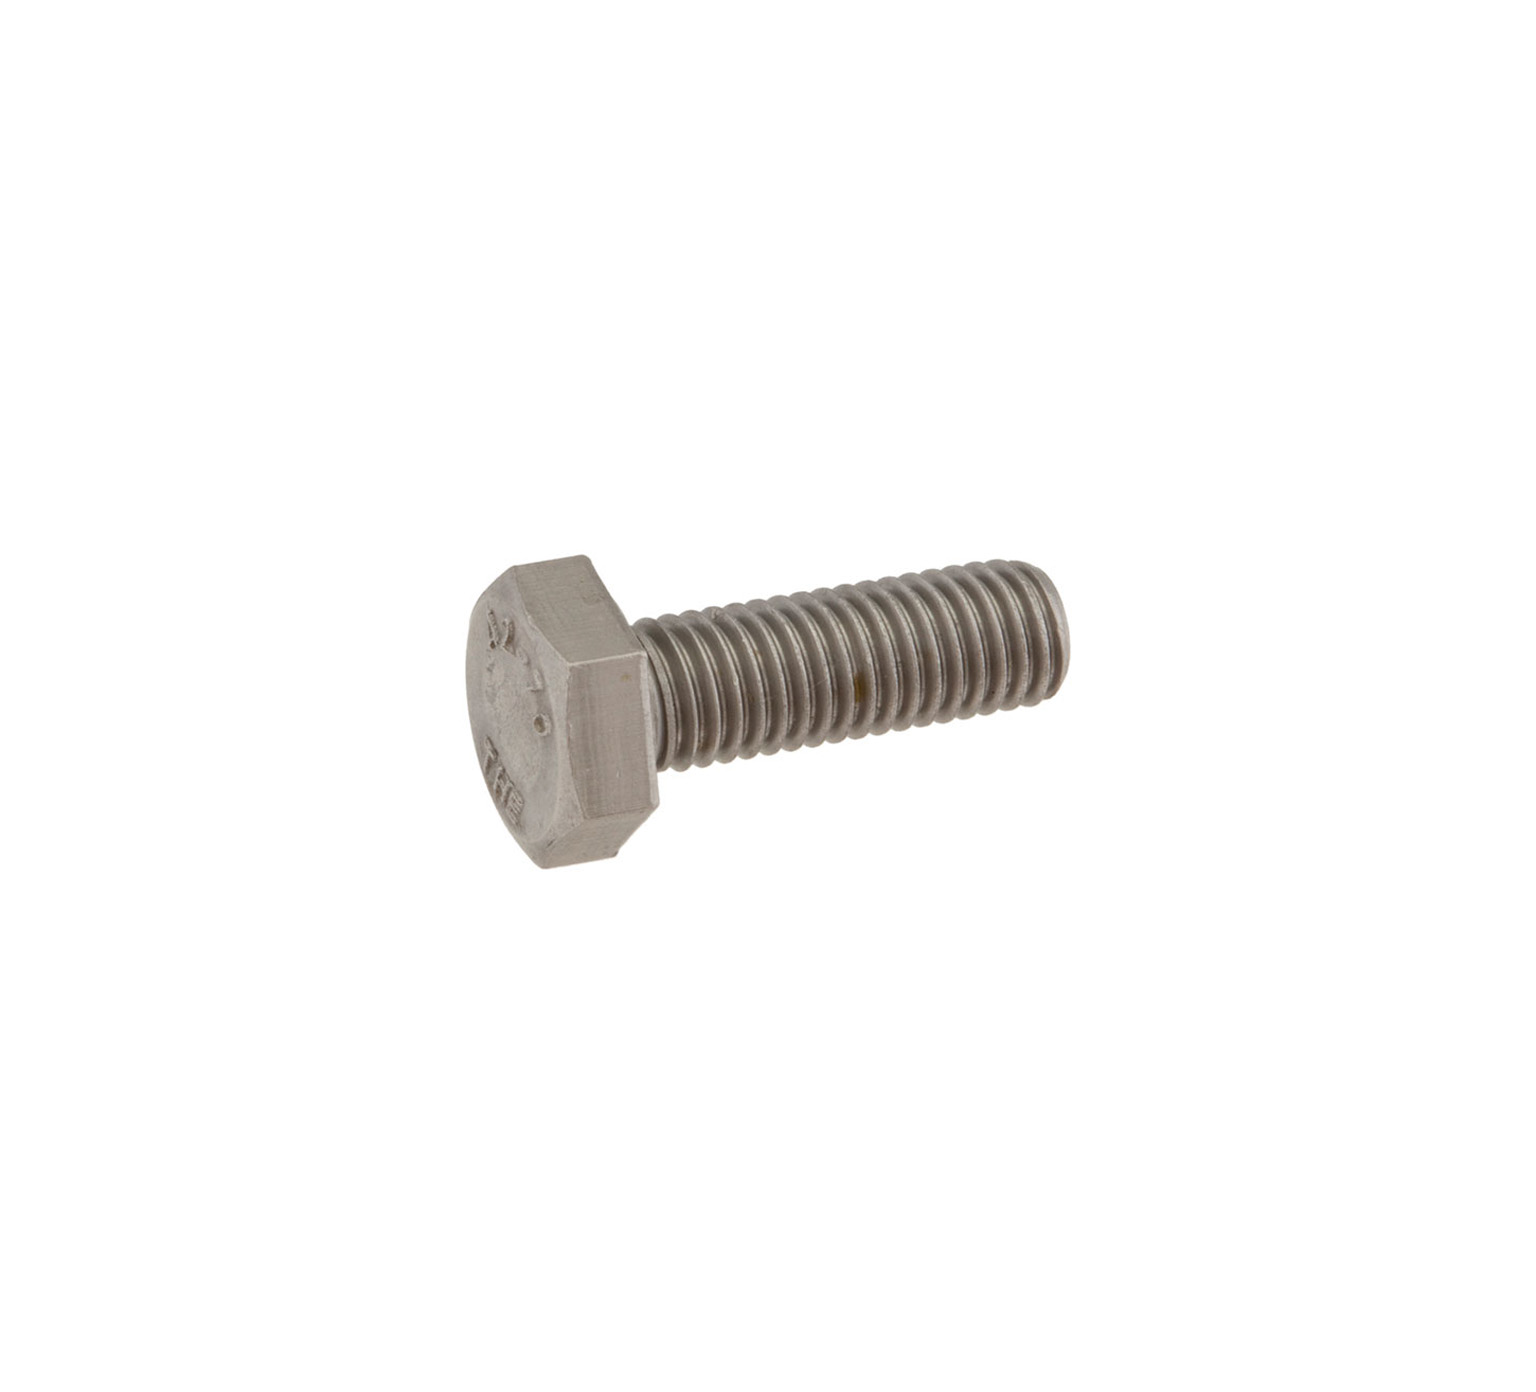 12317 Stainless Steel Hex Screw - M10 Thread x 1.15 in alt 1